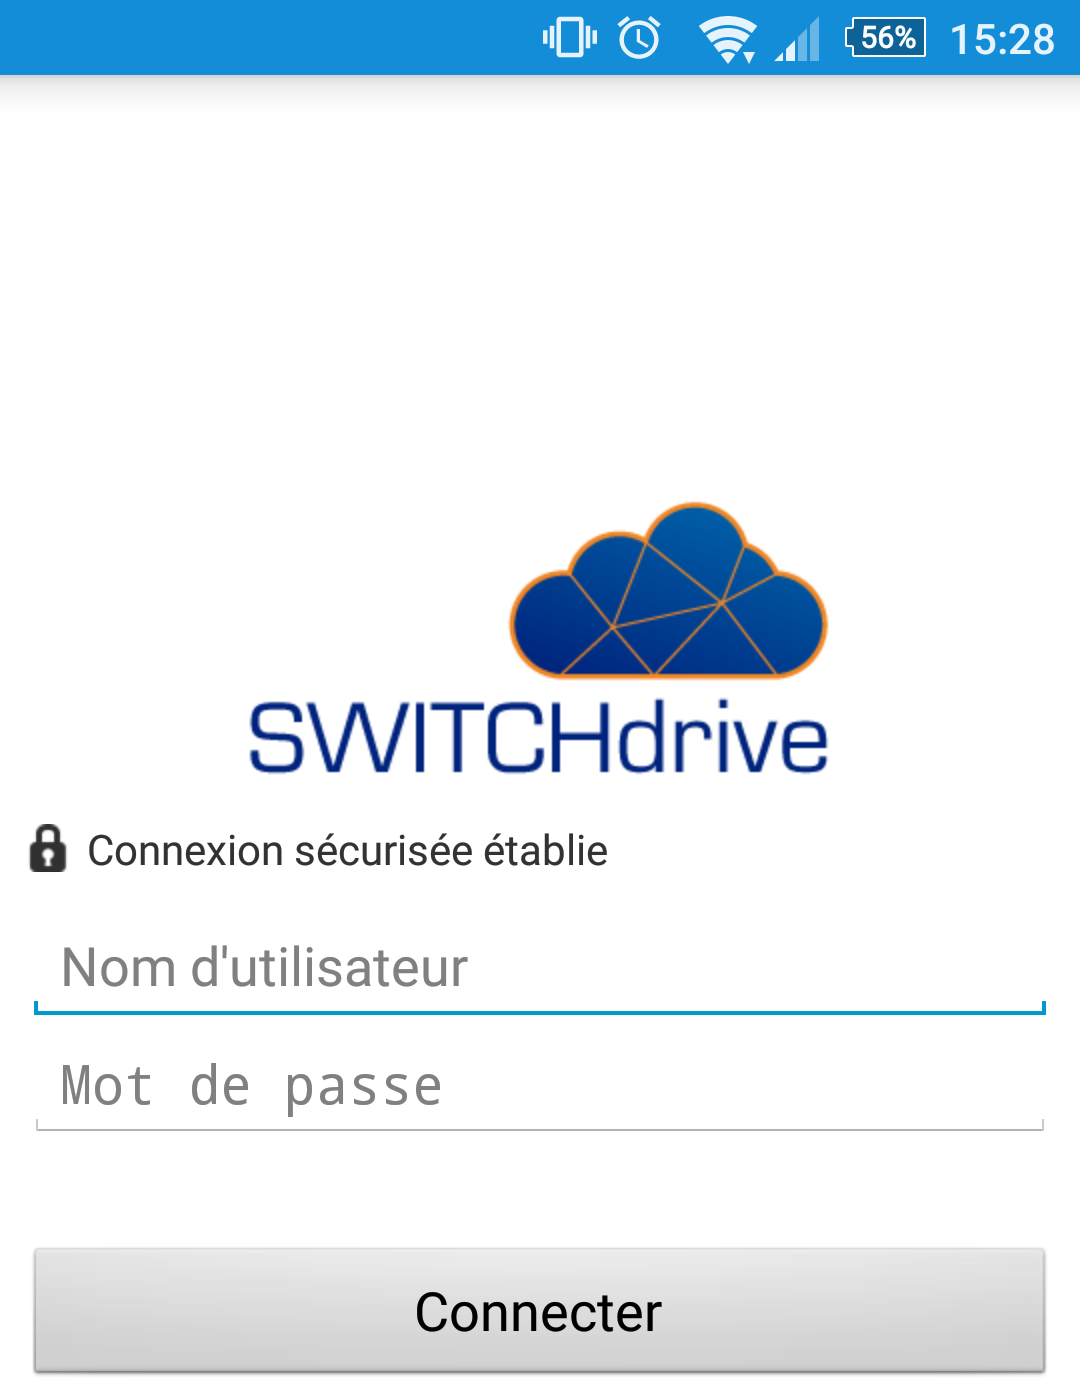 switchdrive_android.PNG